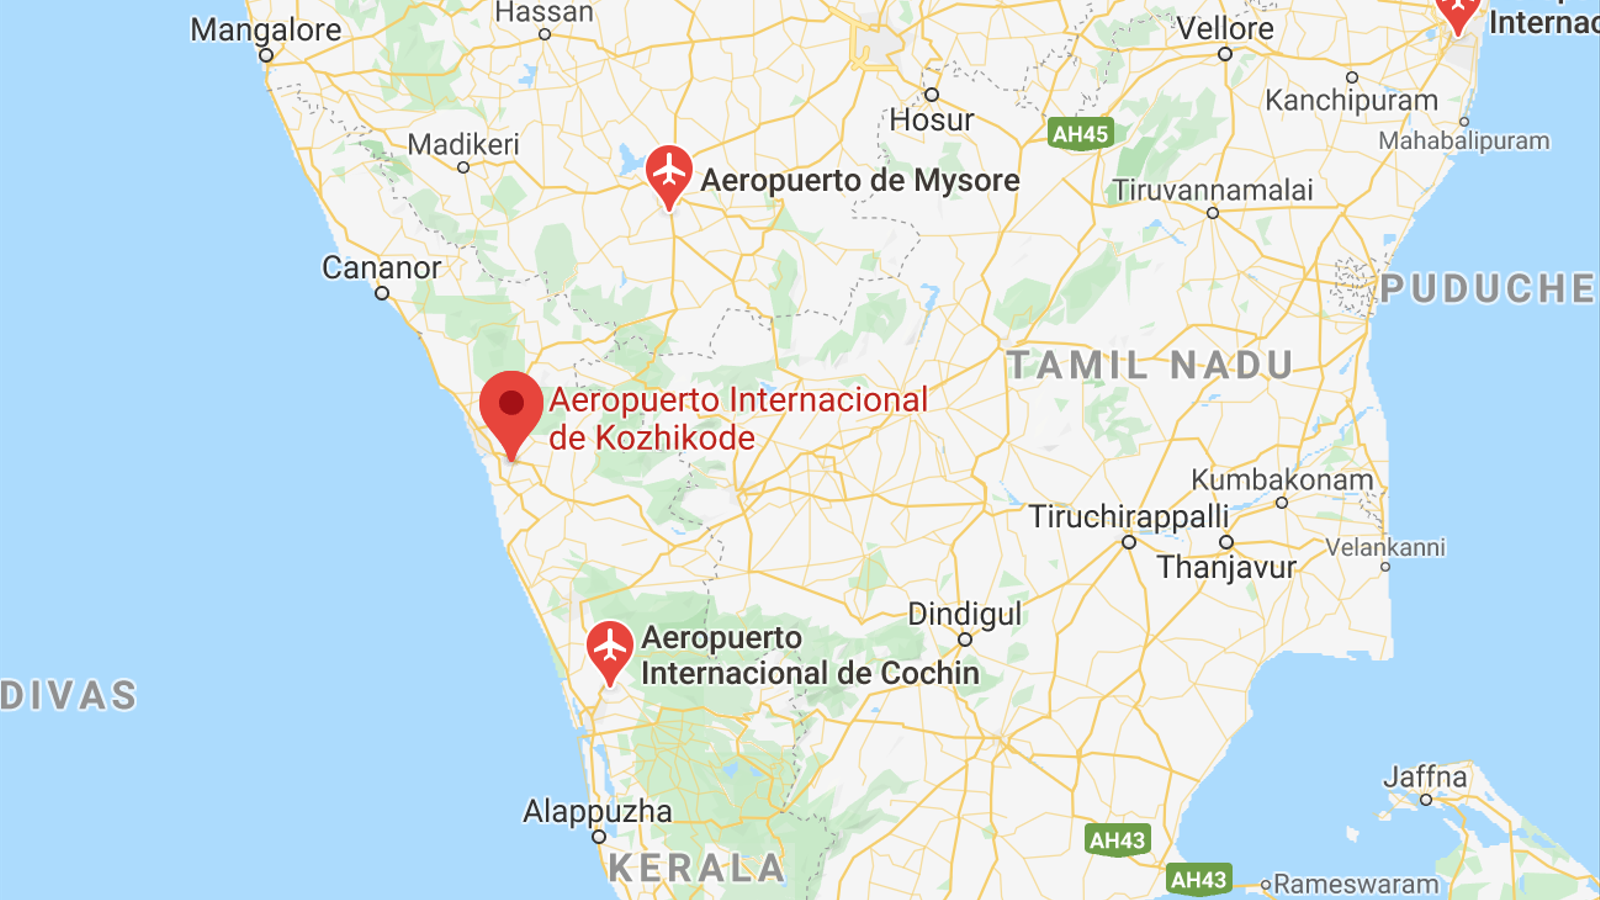 L'aeroport de Kozhikode, a calcula, on s'ha produït l'accident